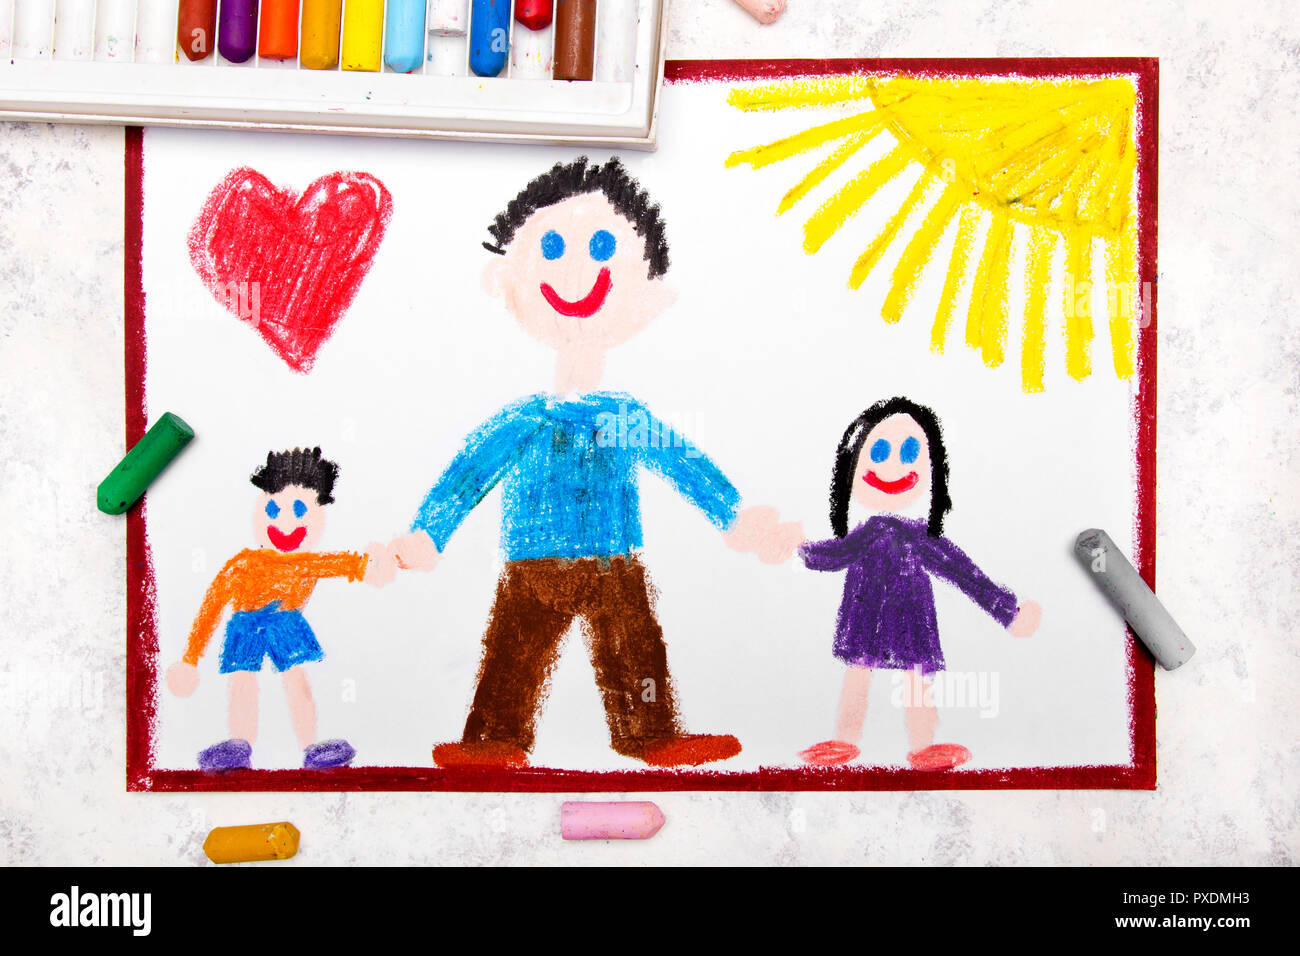 Colorful drawing: Single parenting. Smiling family with father and her two kids: daughter and son. - Stock Image